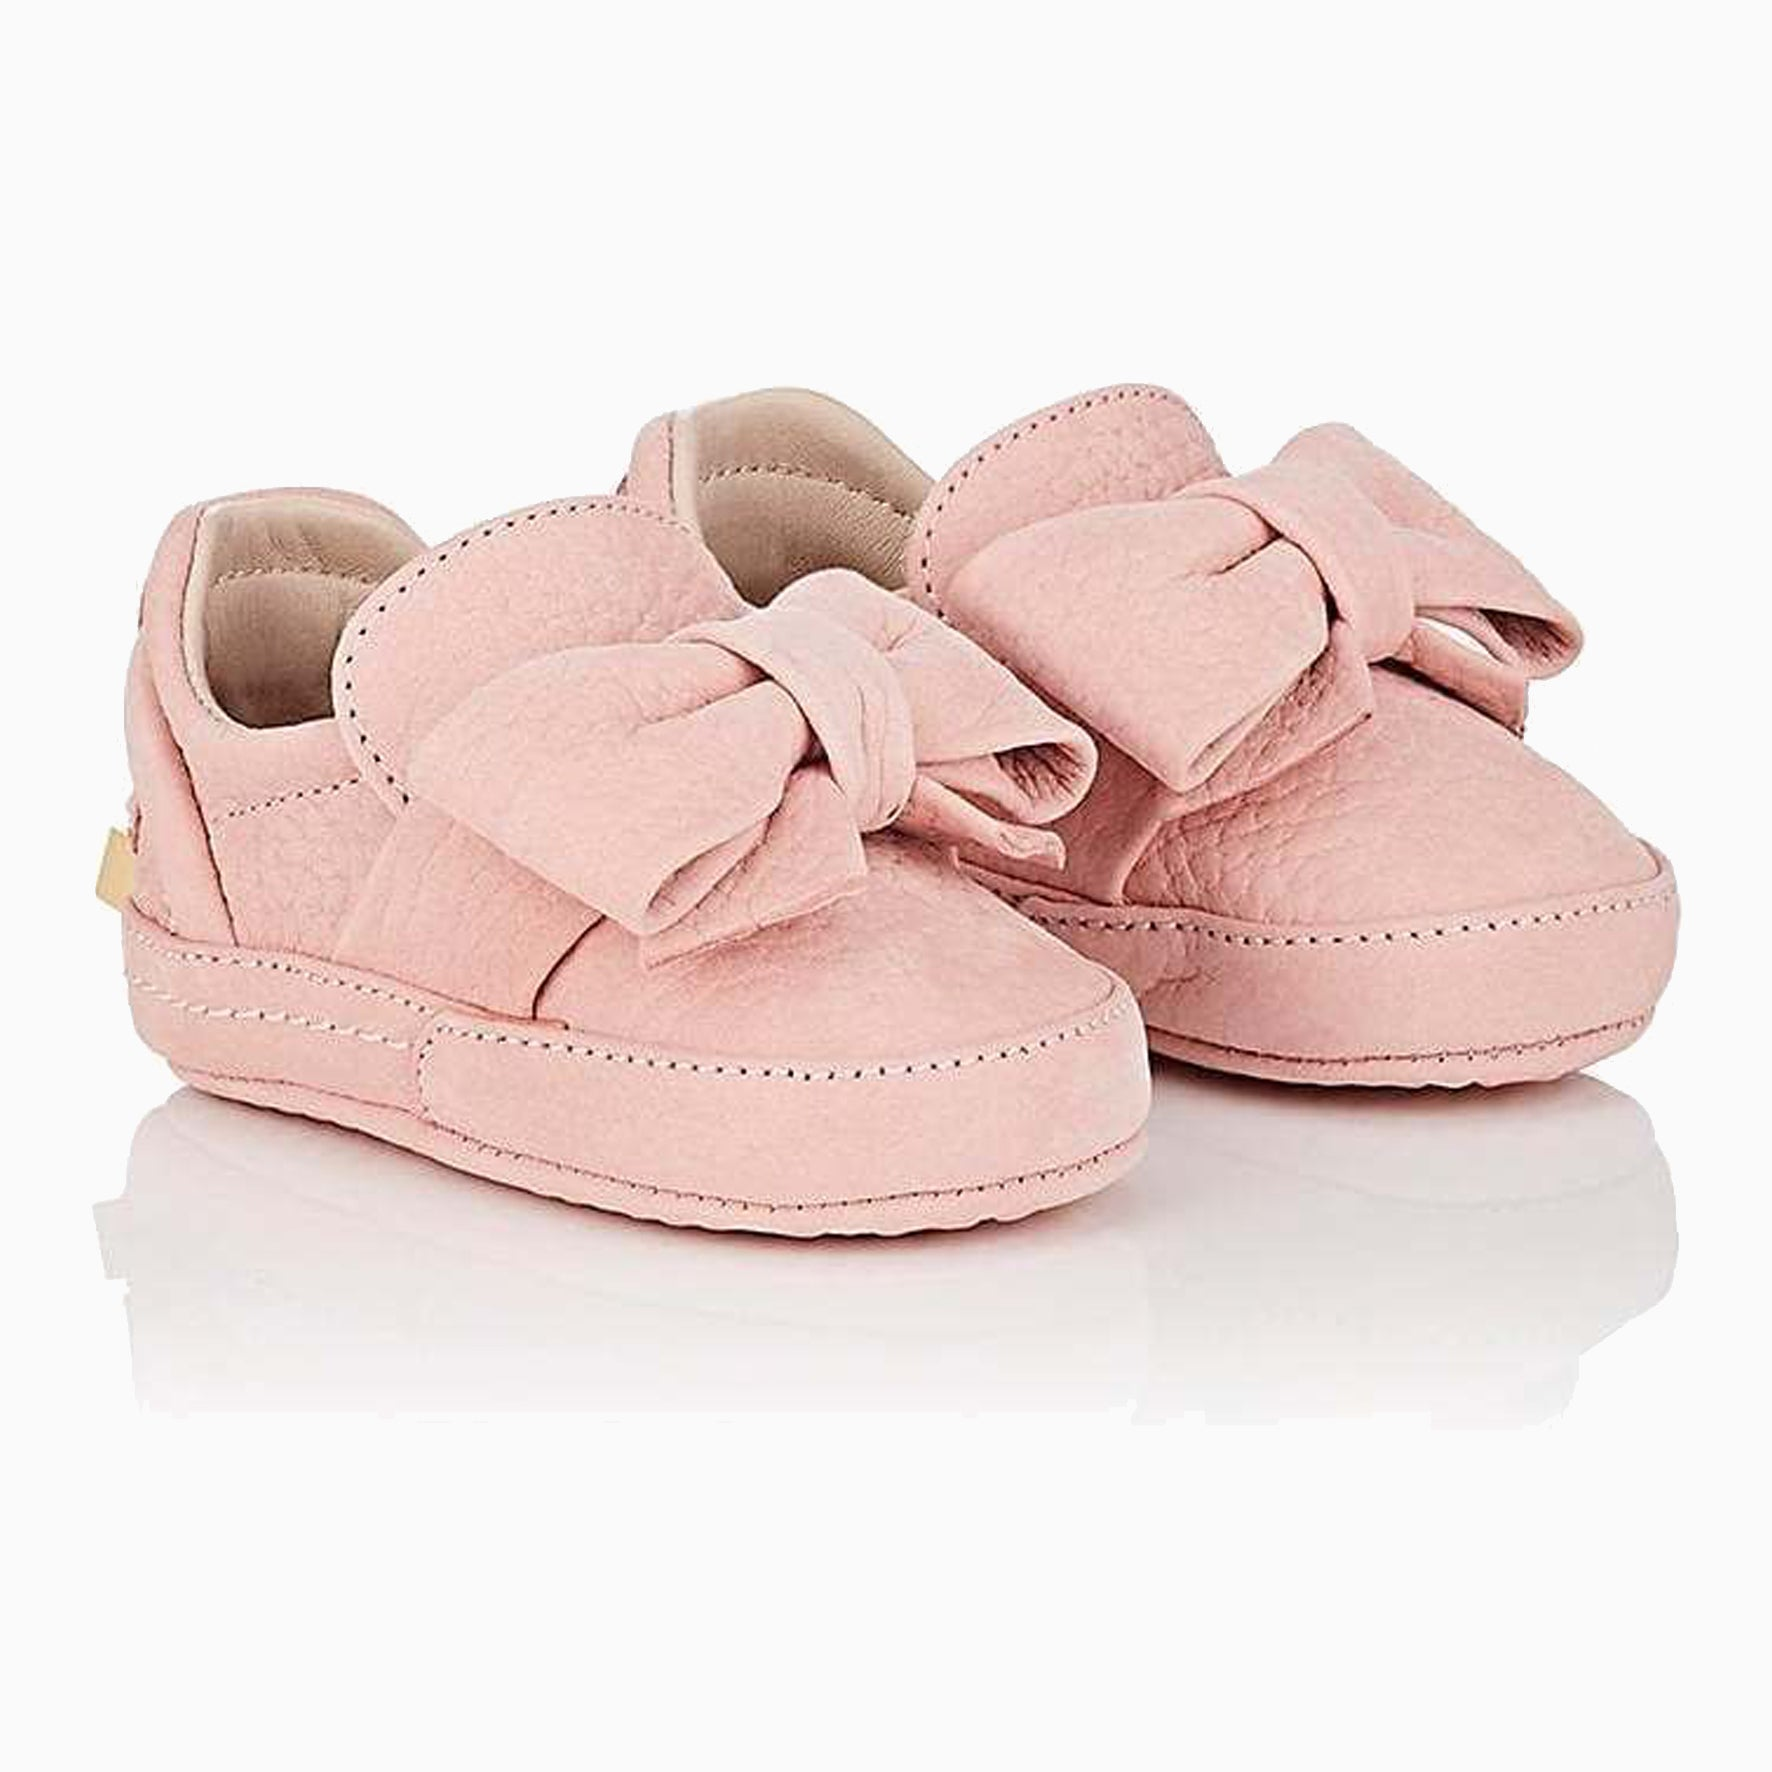 40MM Baby Bow Shoes | Pale Pink